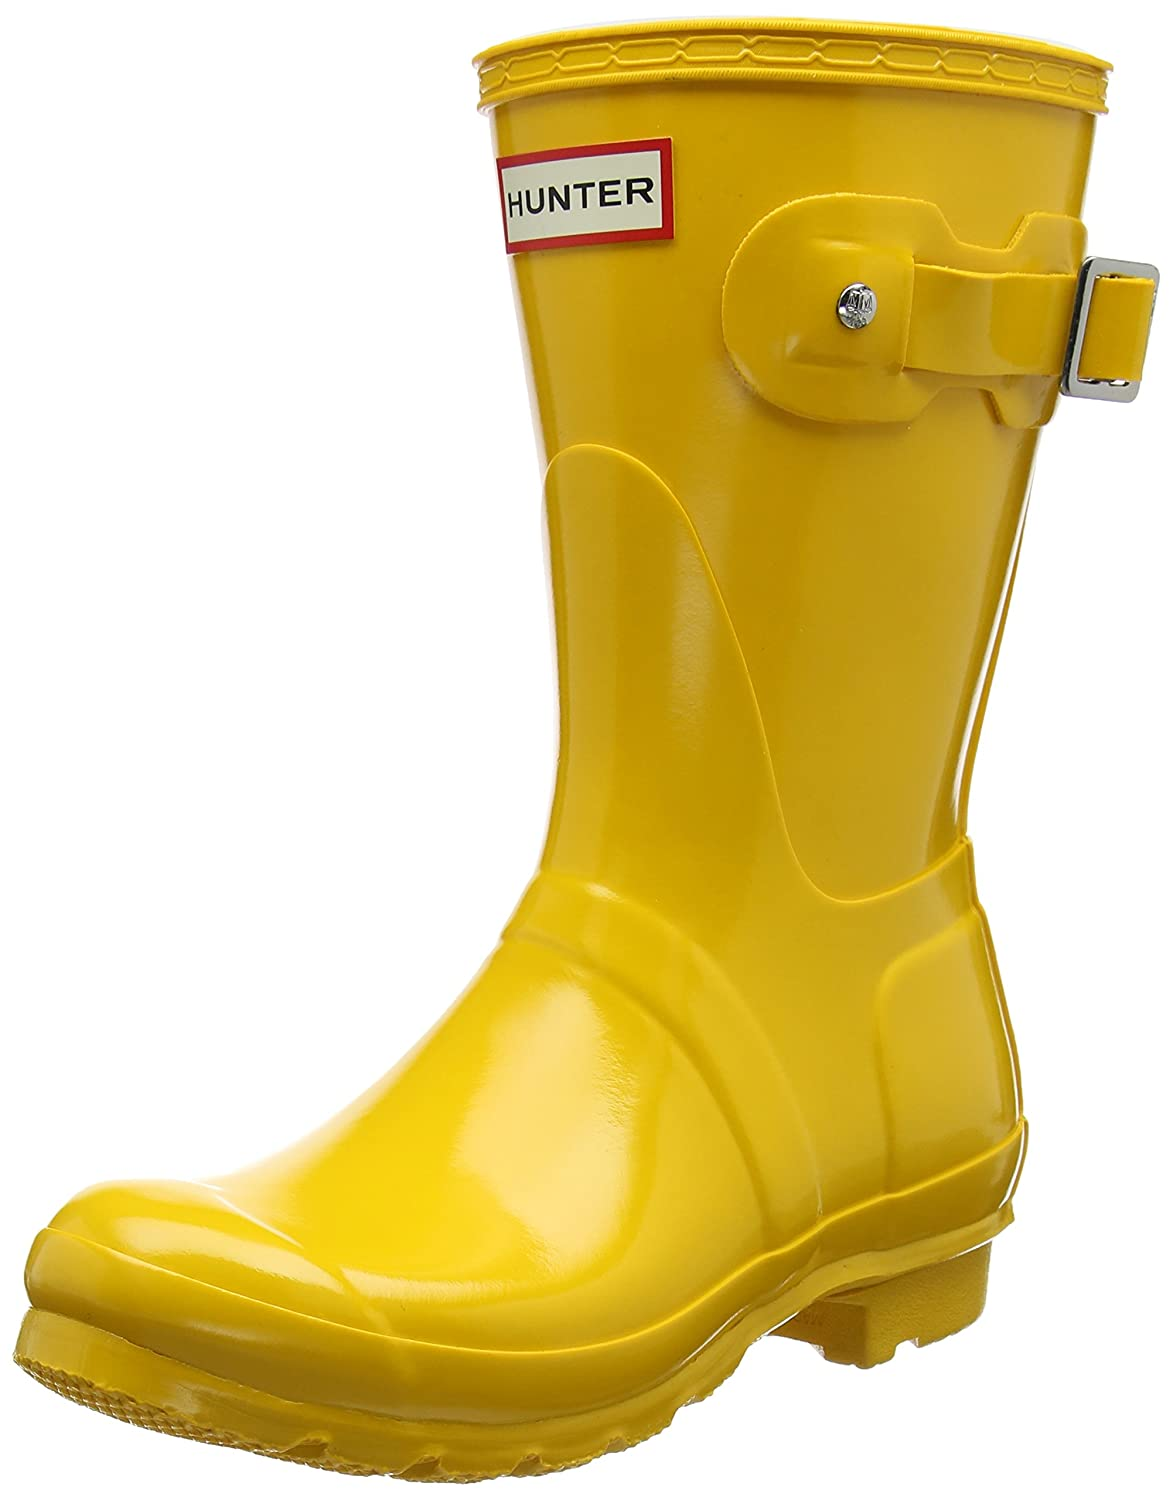 Hunter Women's Original Short Gloss Rain Boots B01N7XNX0U 9 B(M) US|Yellow